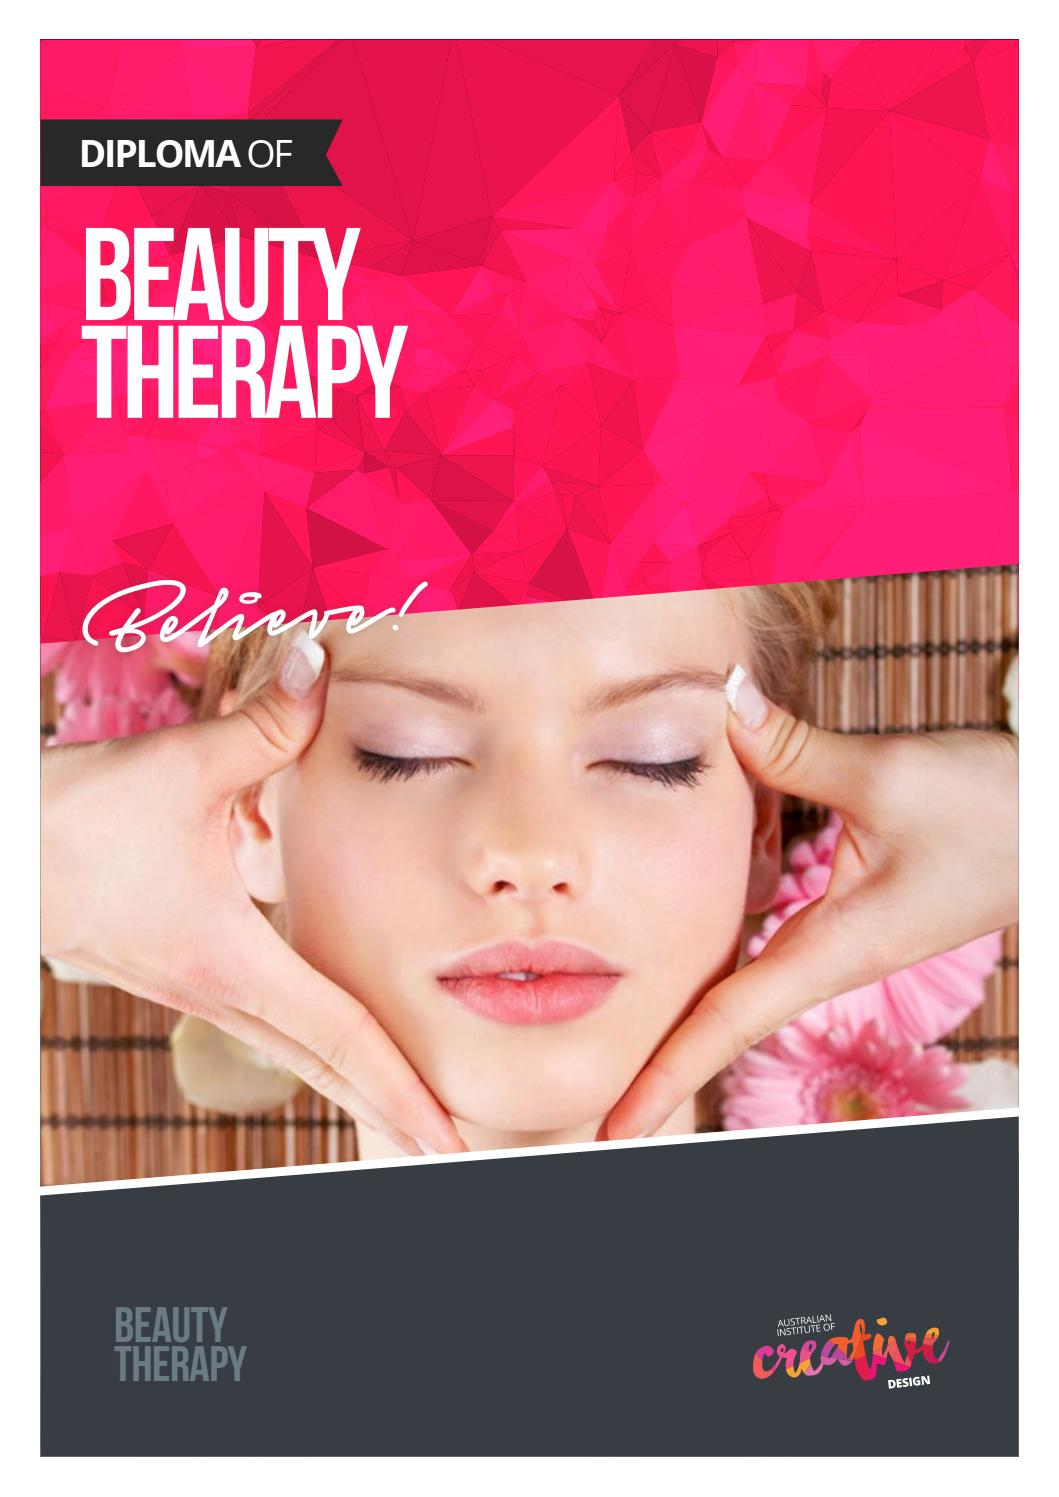 Diploma Of Beauty Therapy By Australian Institute Of Creative Design Issuu